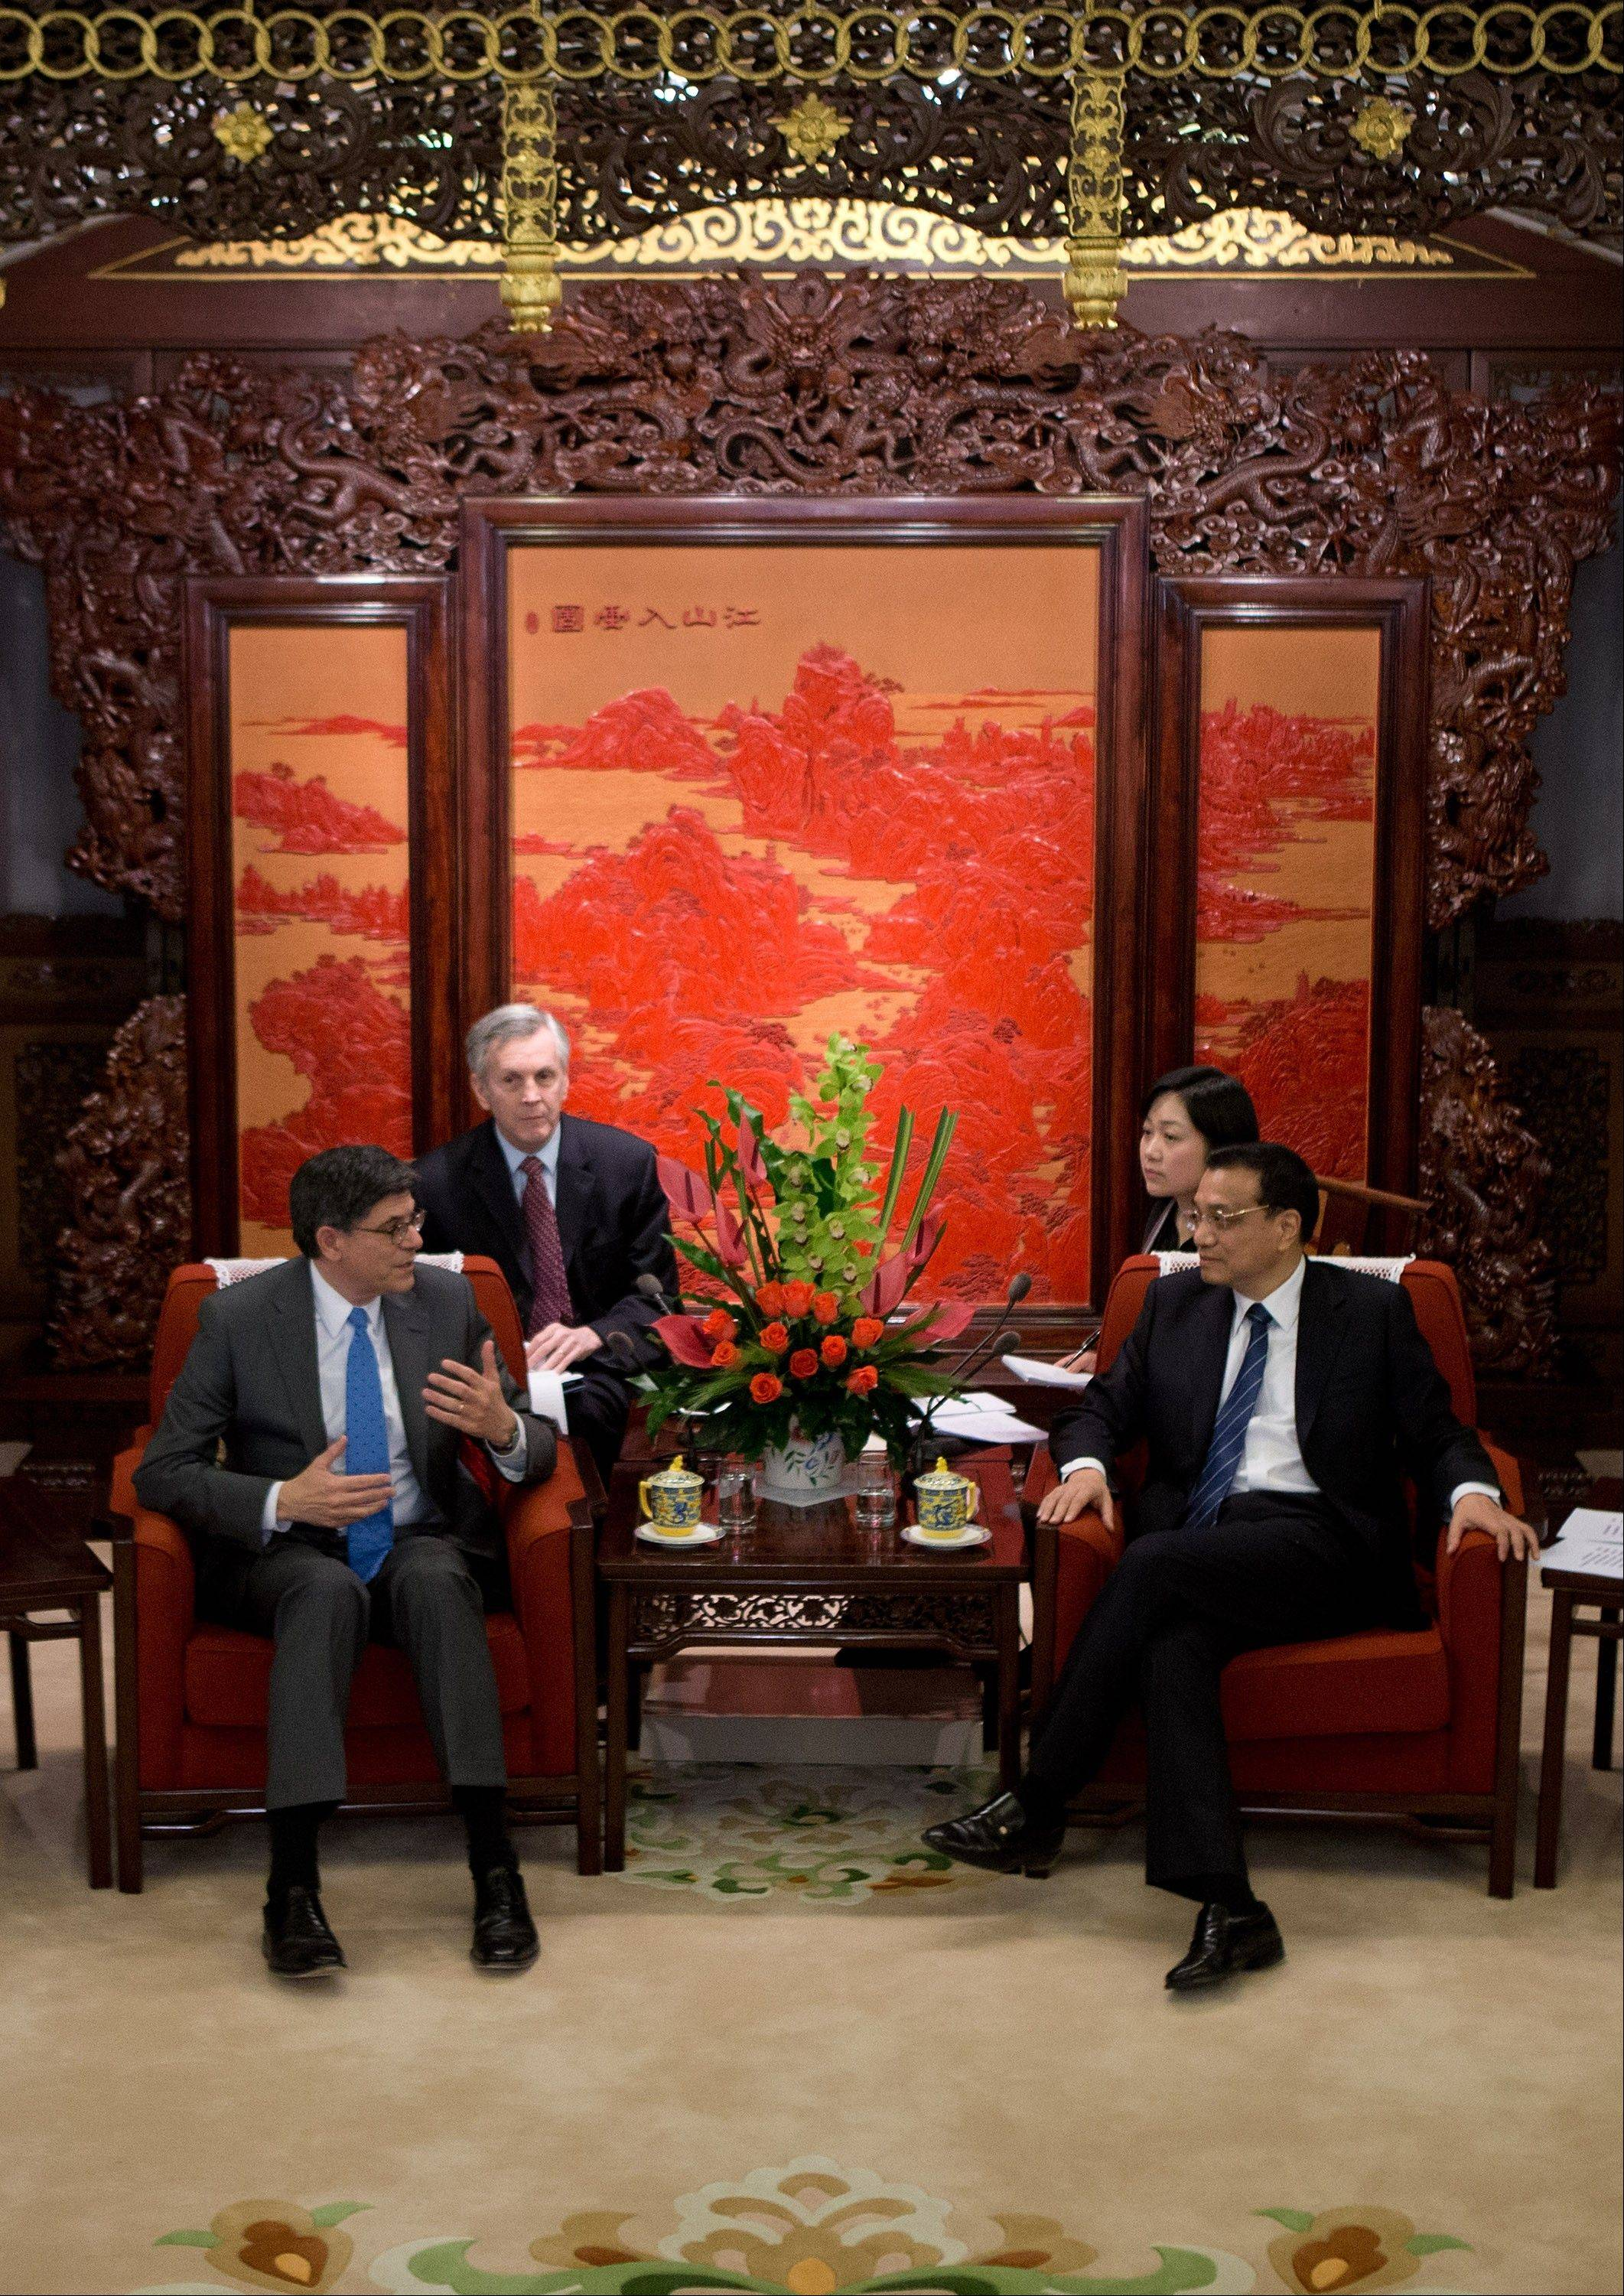 U.S. Treasury Secretary Jacob Lew speaks with Chinese Premier Li Keqiang during their meeting at the Zhongnanhai diplomatic compound in Beijing Wednesday.